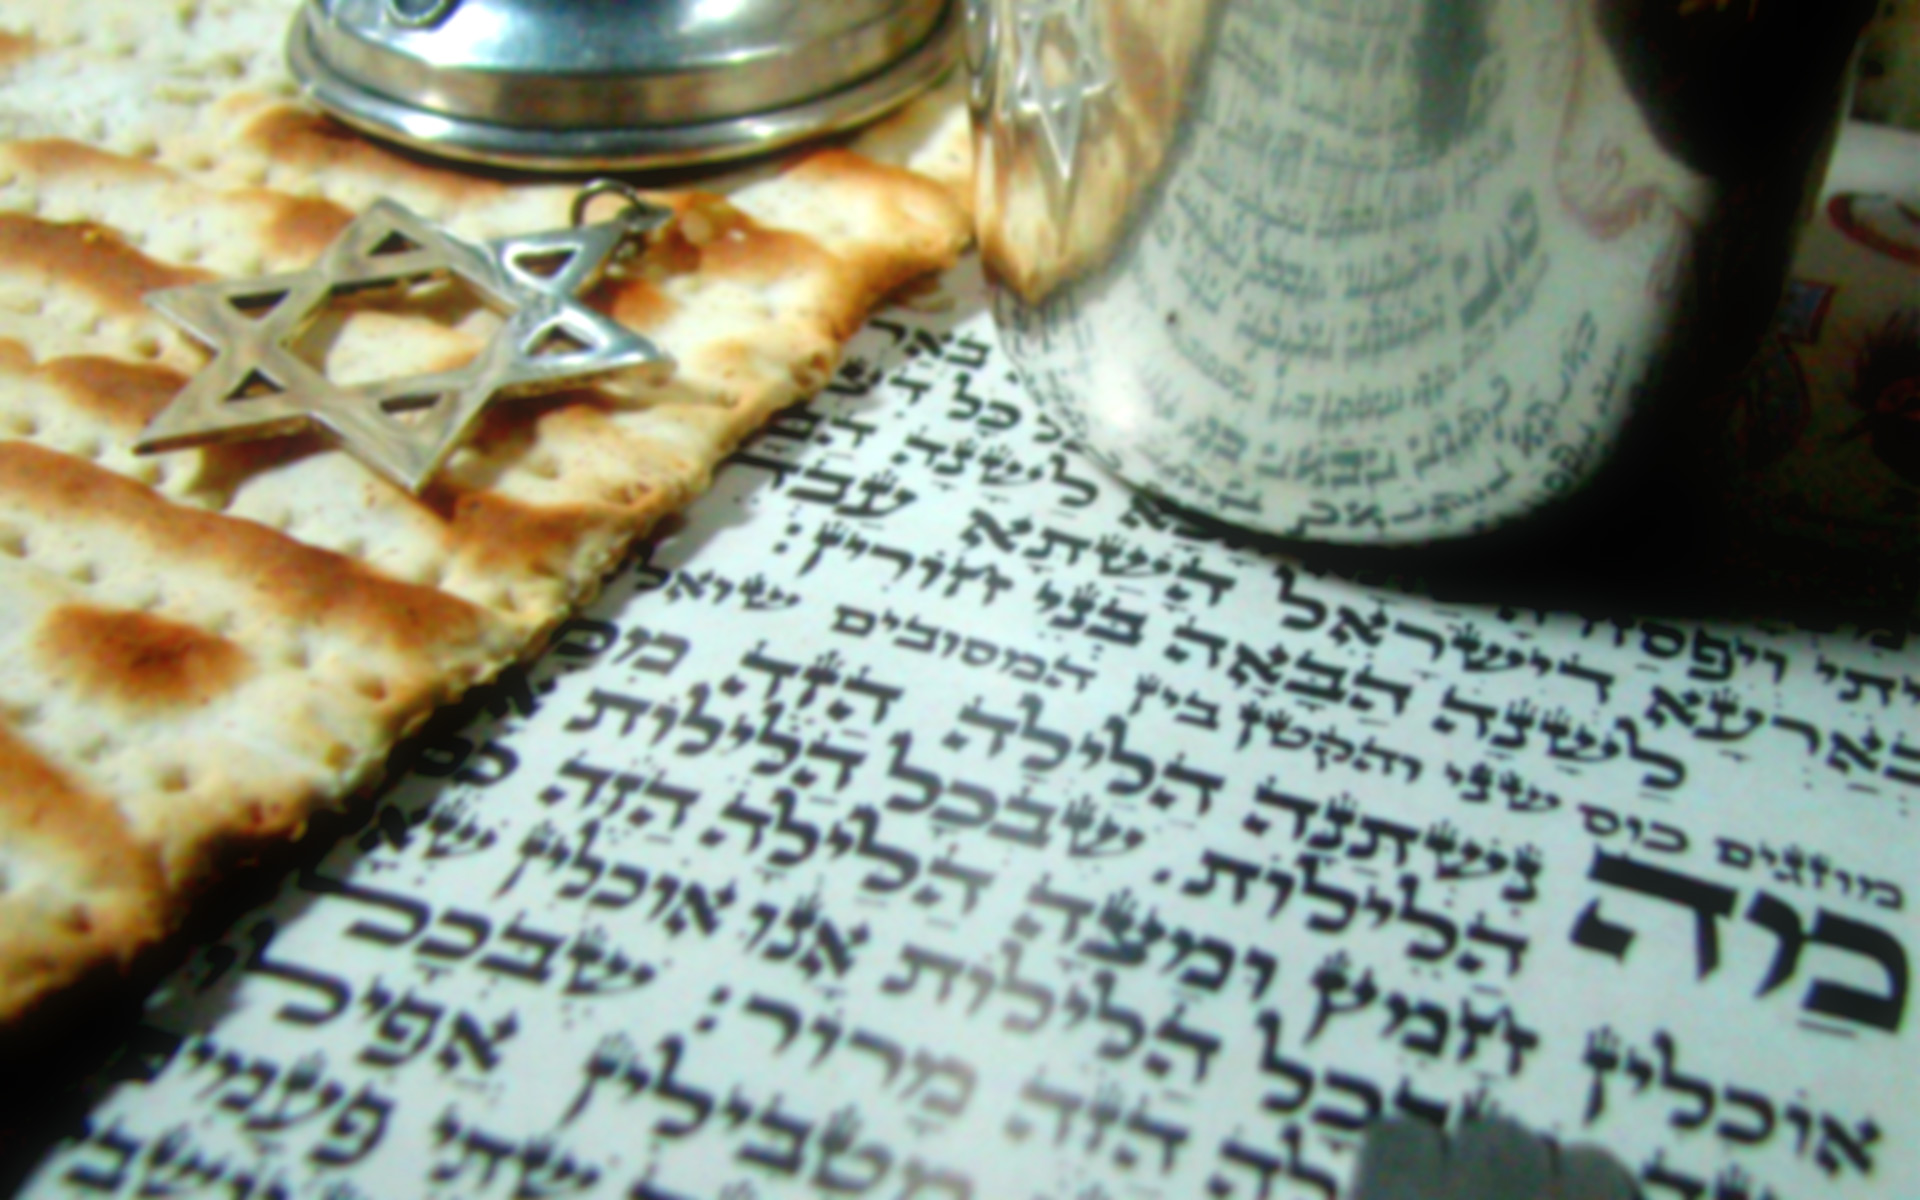 10 Interesting Facts You Didn't Know about Passover